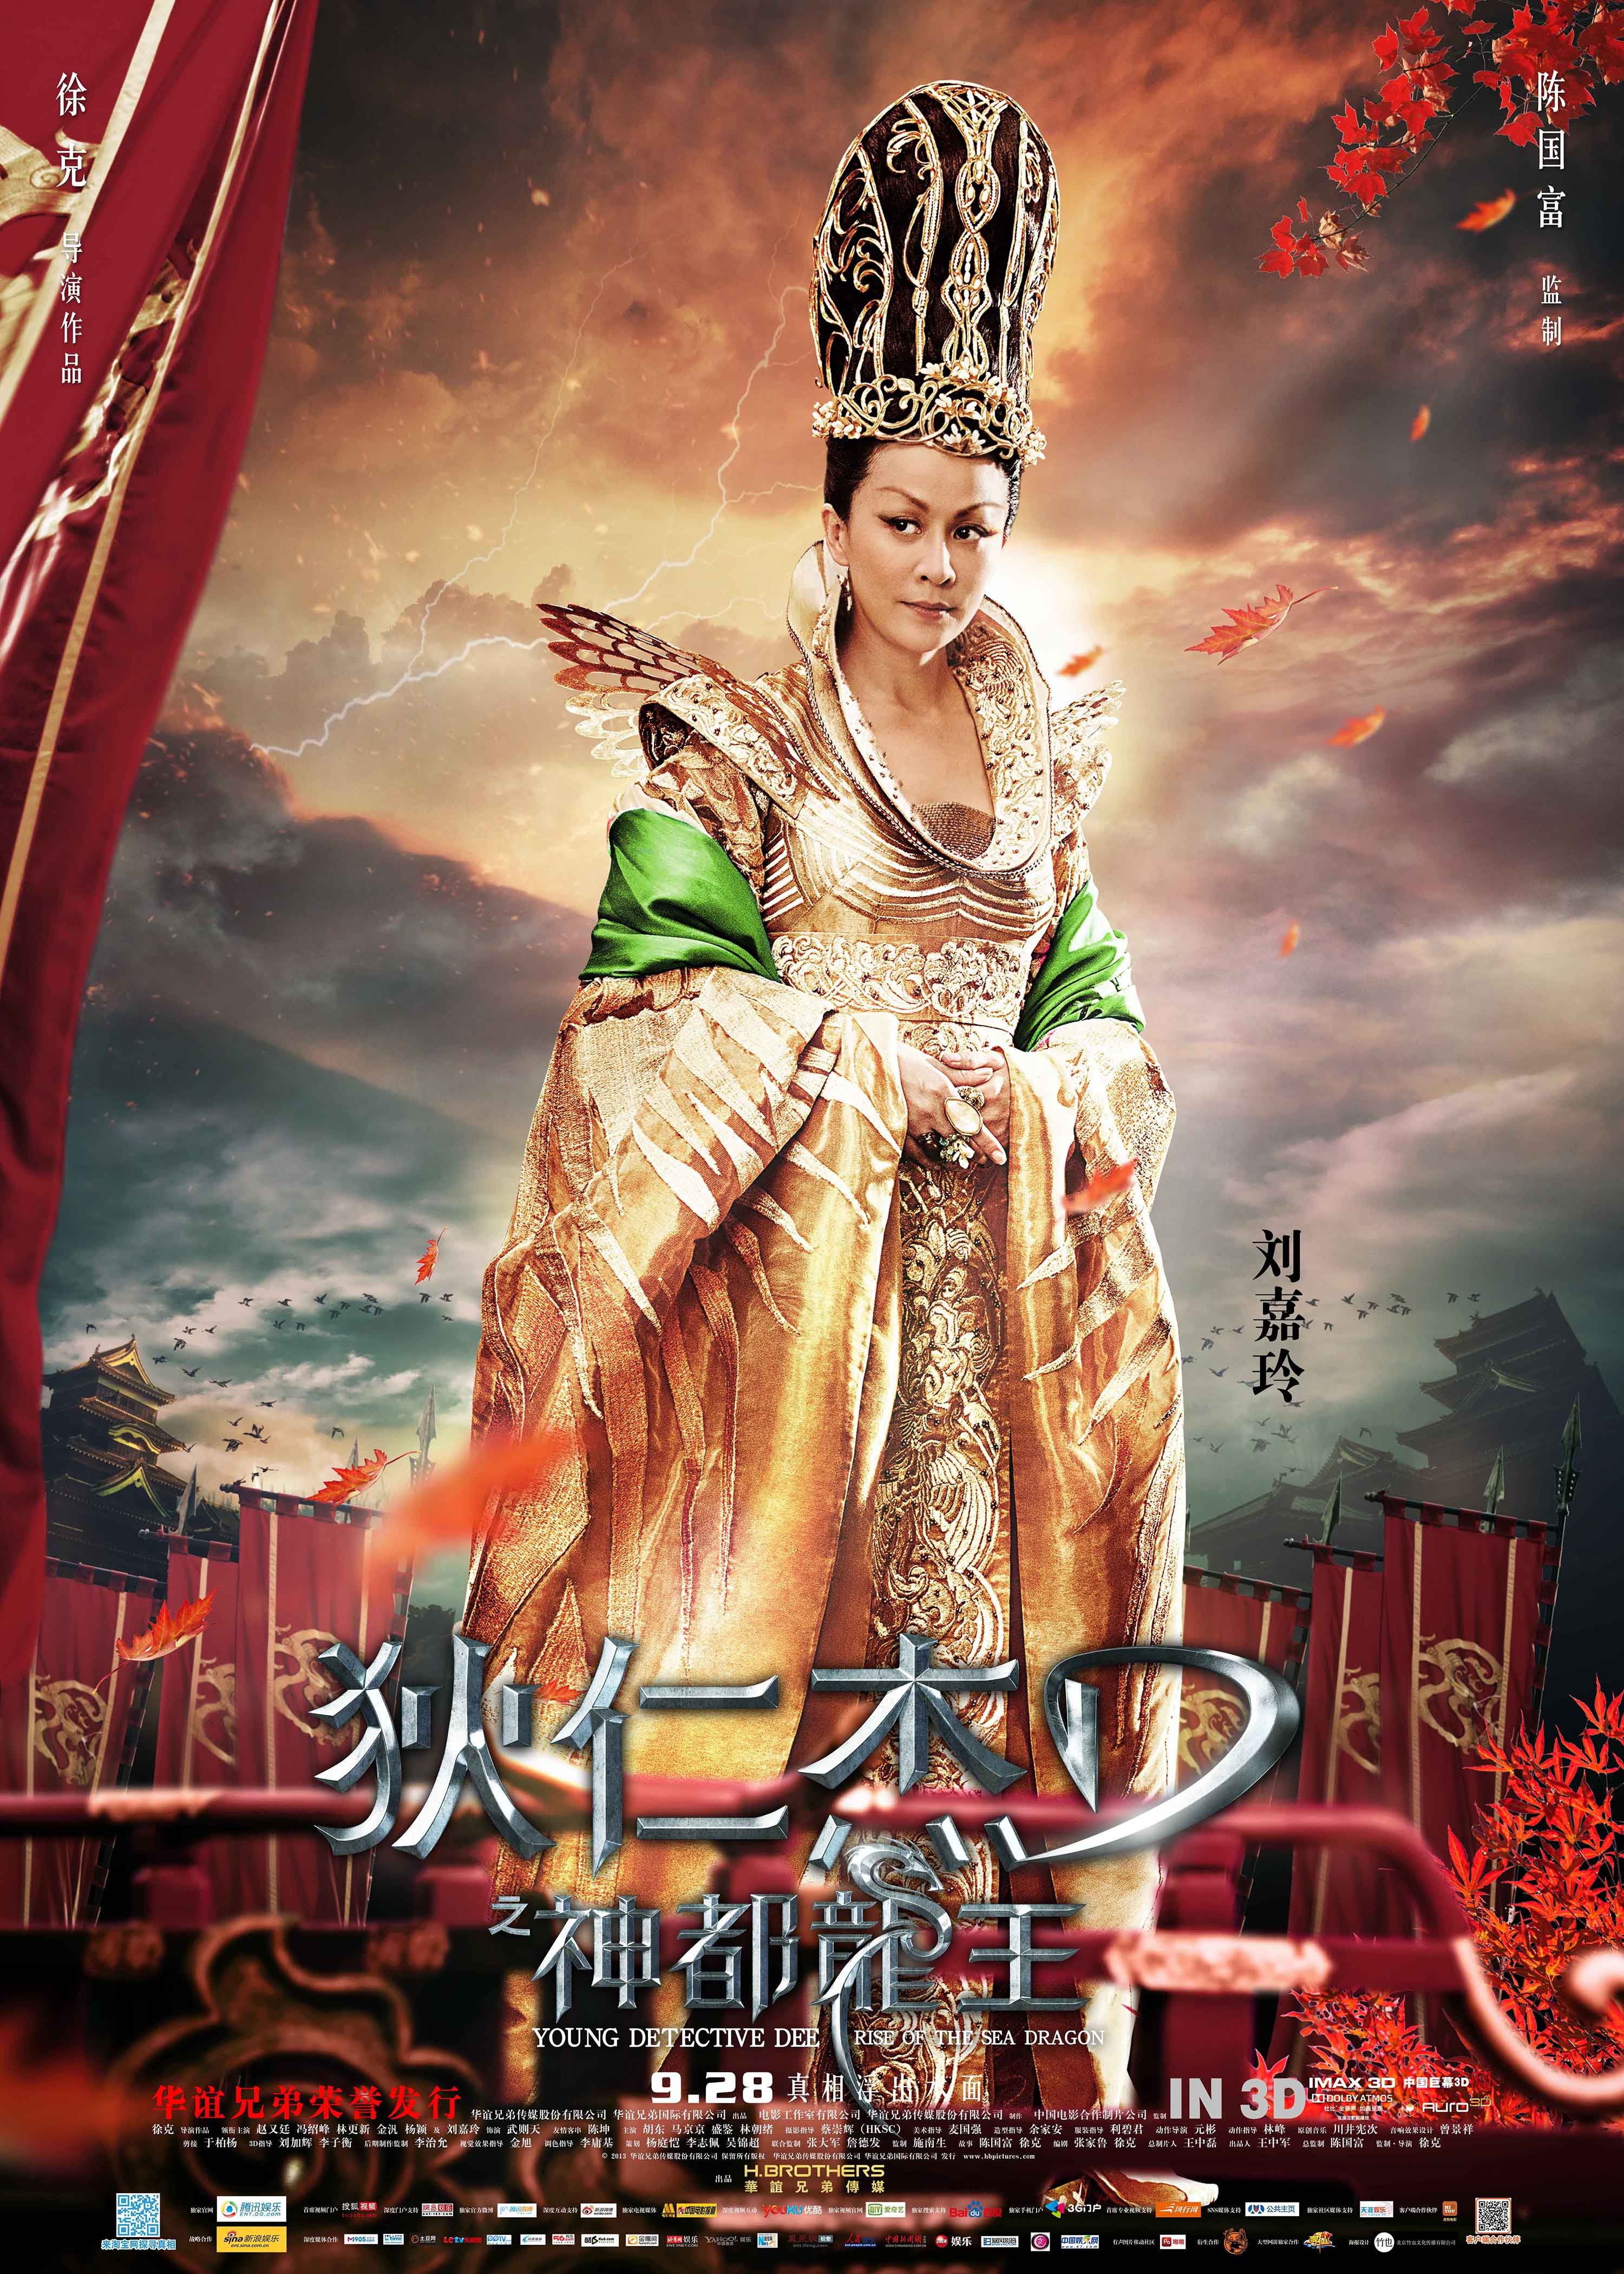 young_detective_dee_rise_of_the_sea_dragon_poster_2013_01.jpg